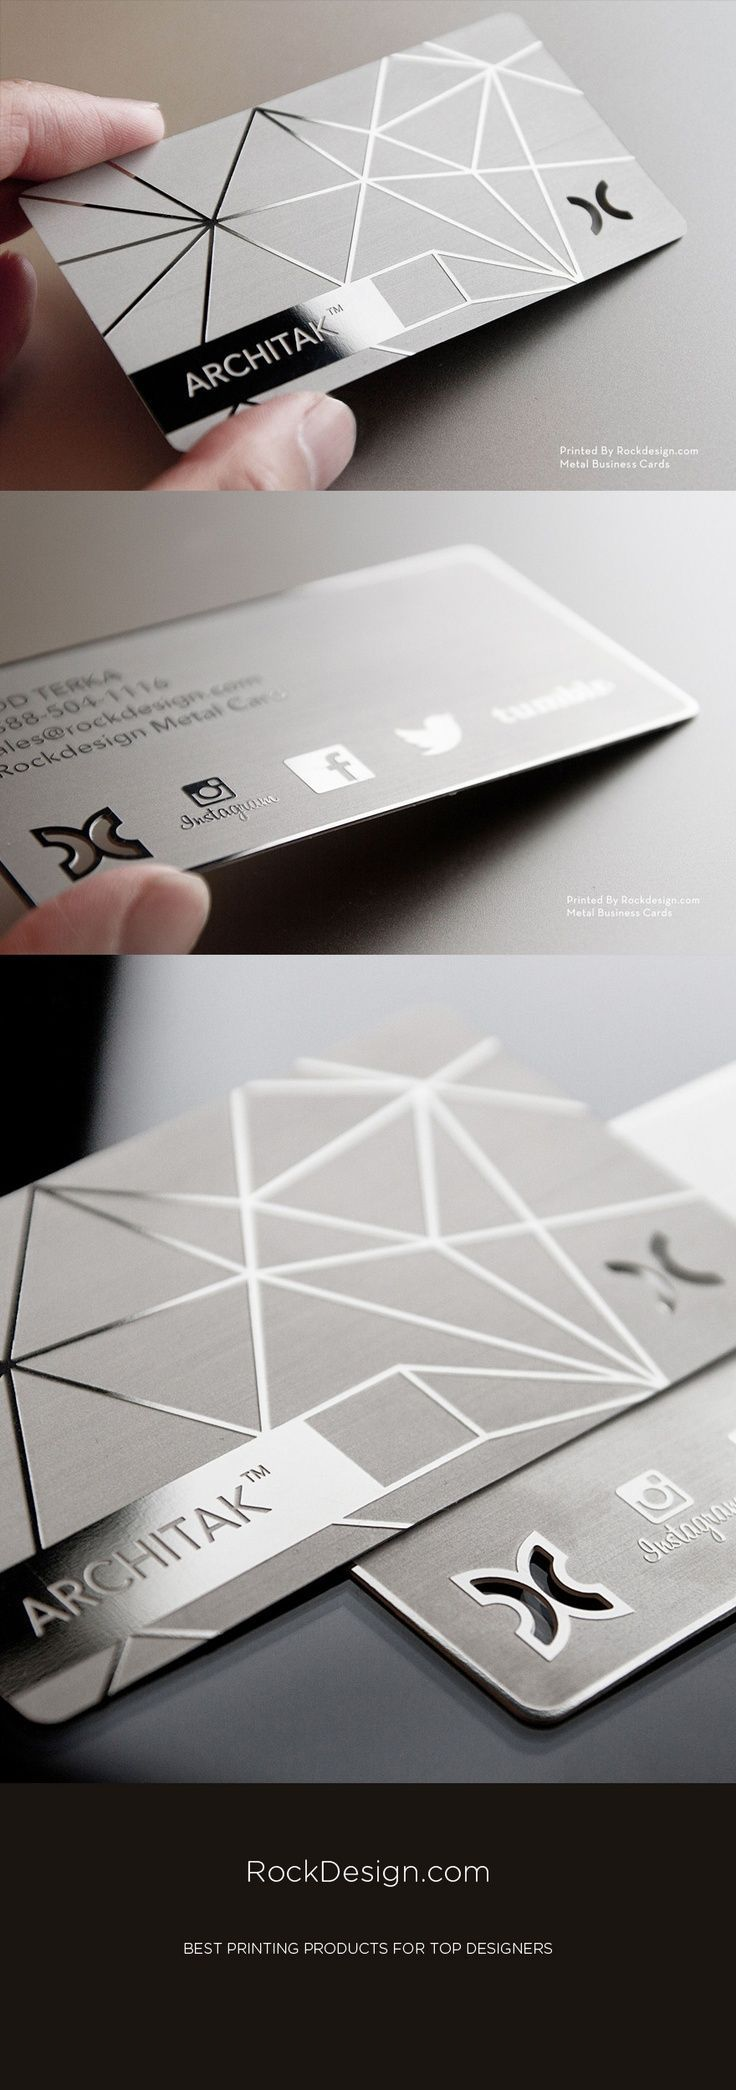 27 best Business Card Inspiration images on Pinterest | Creative ...